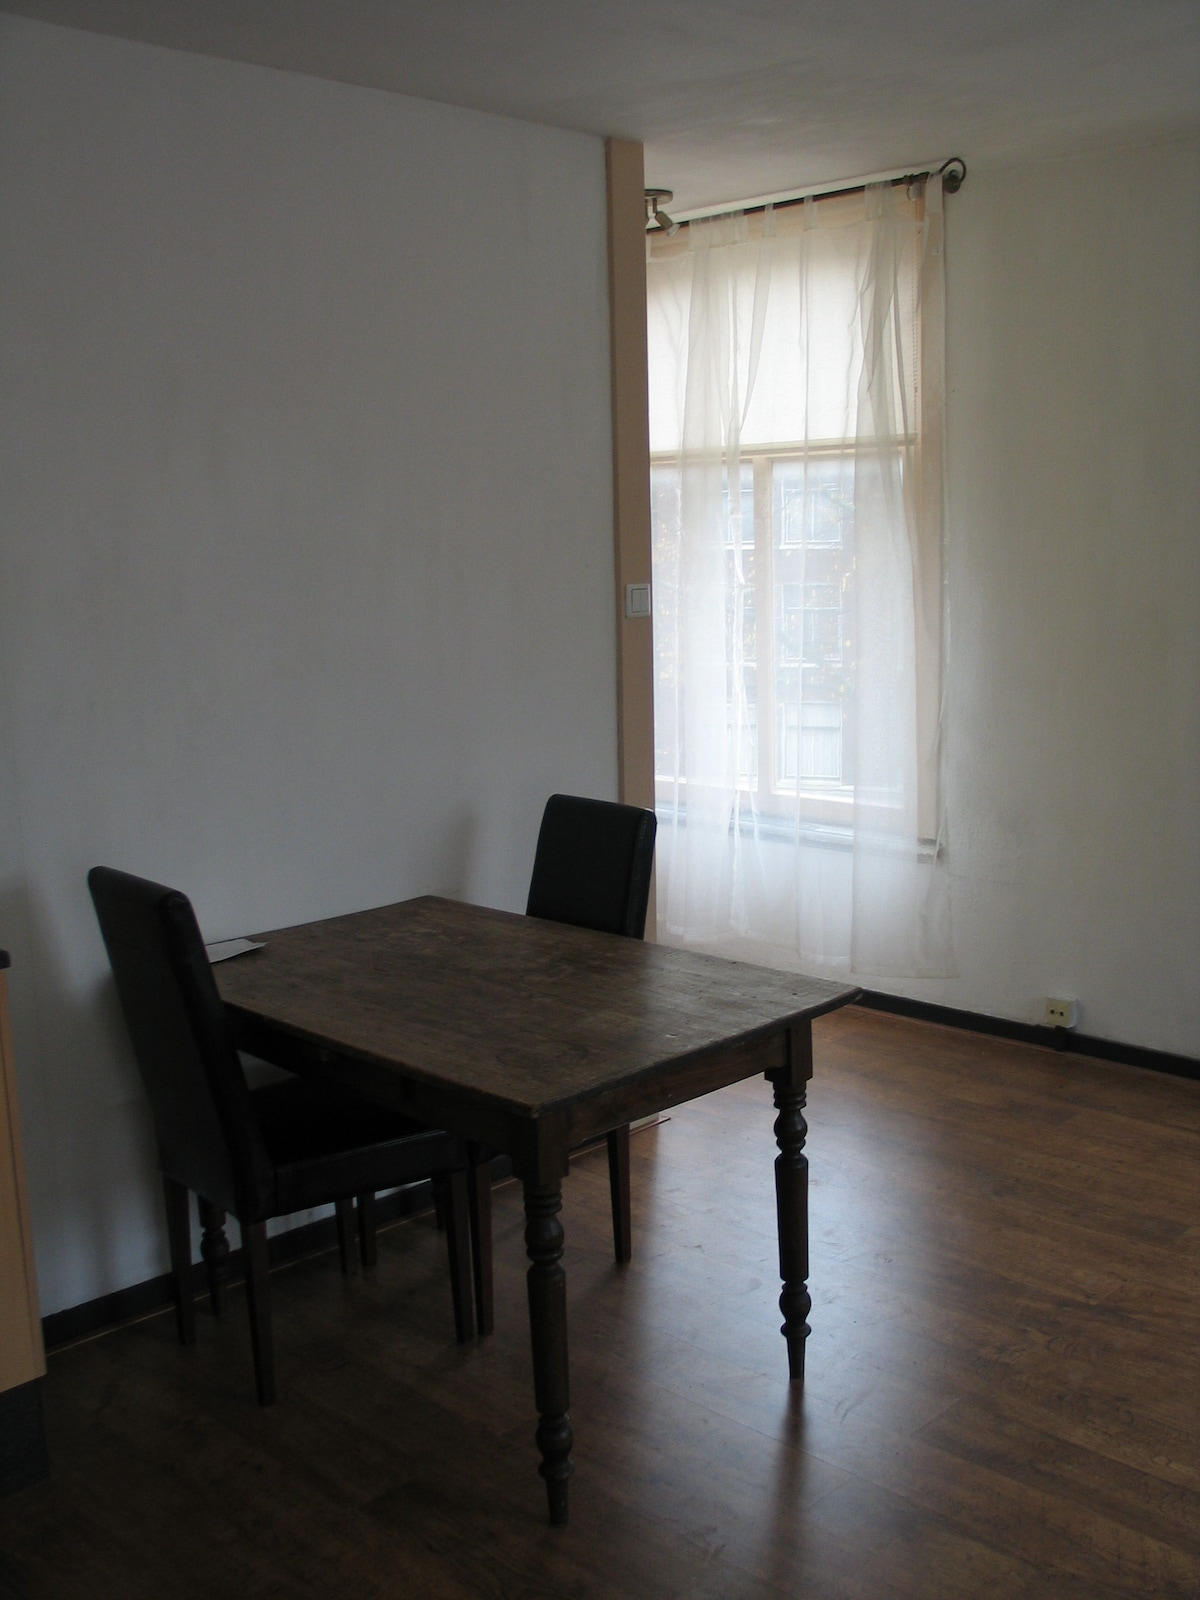 tasteful leatherlook chairs, antique farmer's table, great for good dinners with up to 4 friends (rest on sofa)